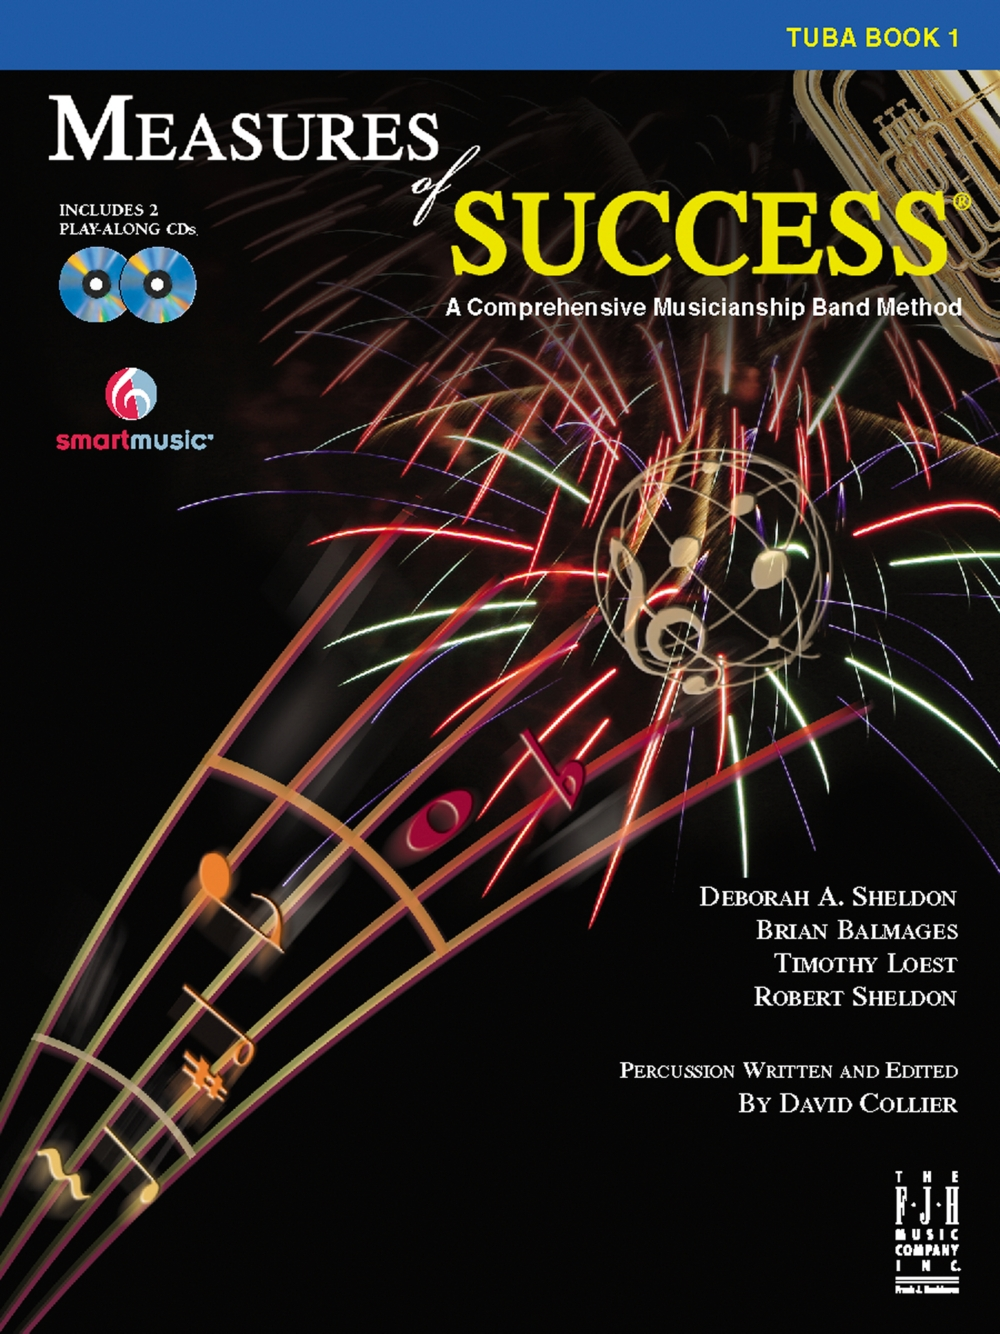 FJH Music Measures of Success Tuba Book 1 by